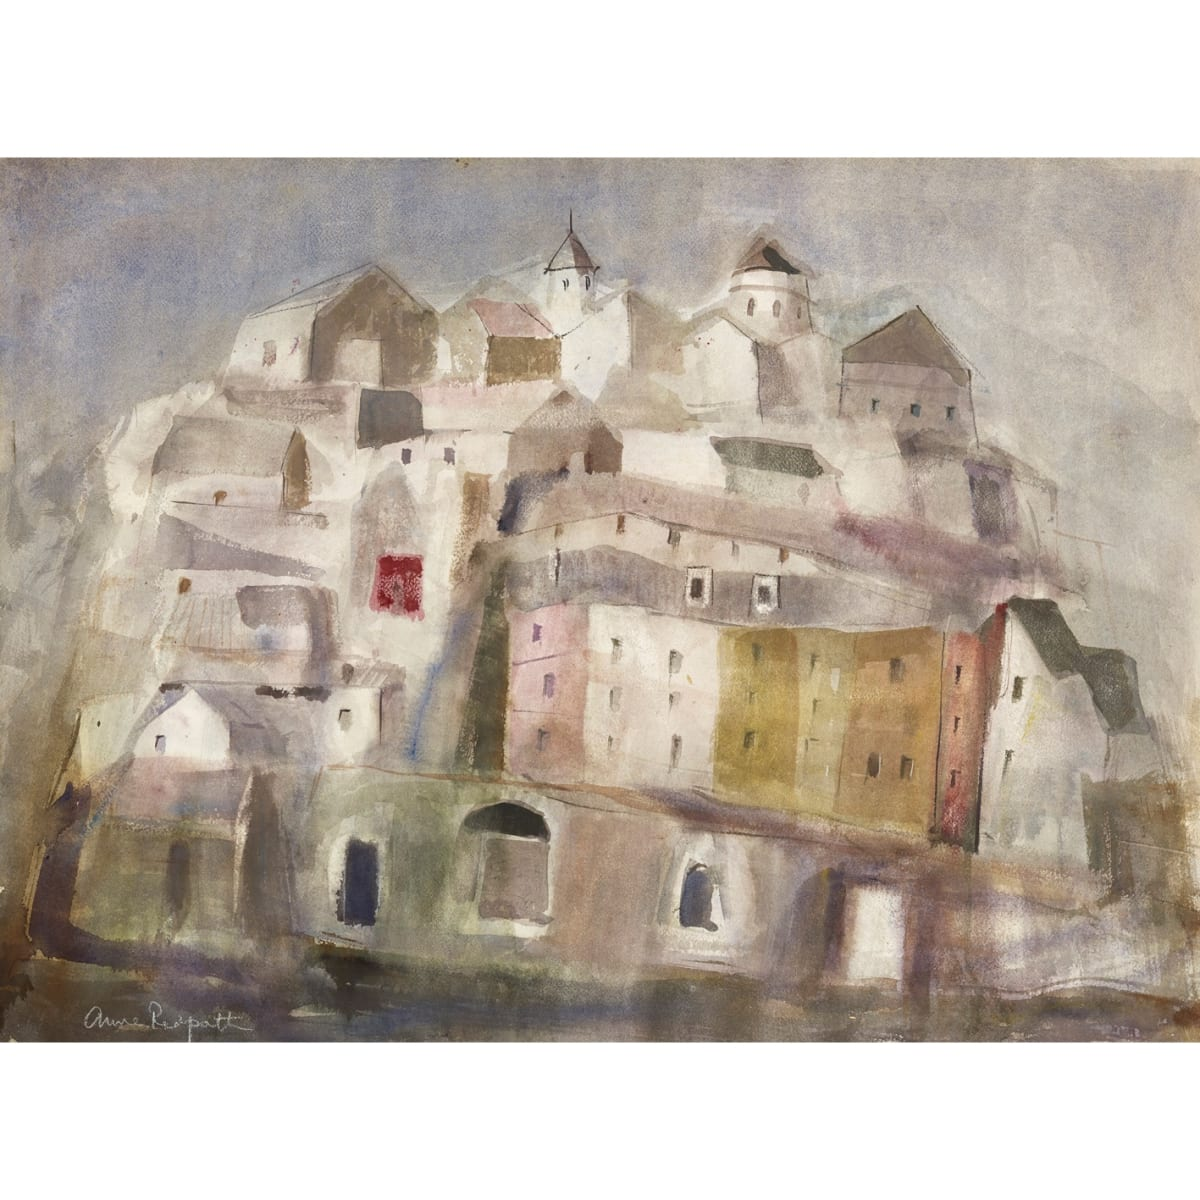 Anne Redpath A Town in Spain, c.1963 signed watercolour on paper 21 3/4 x 29 3/4 inches